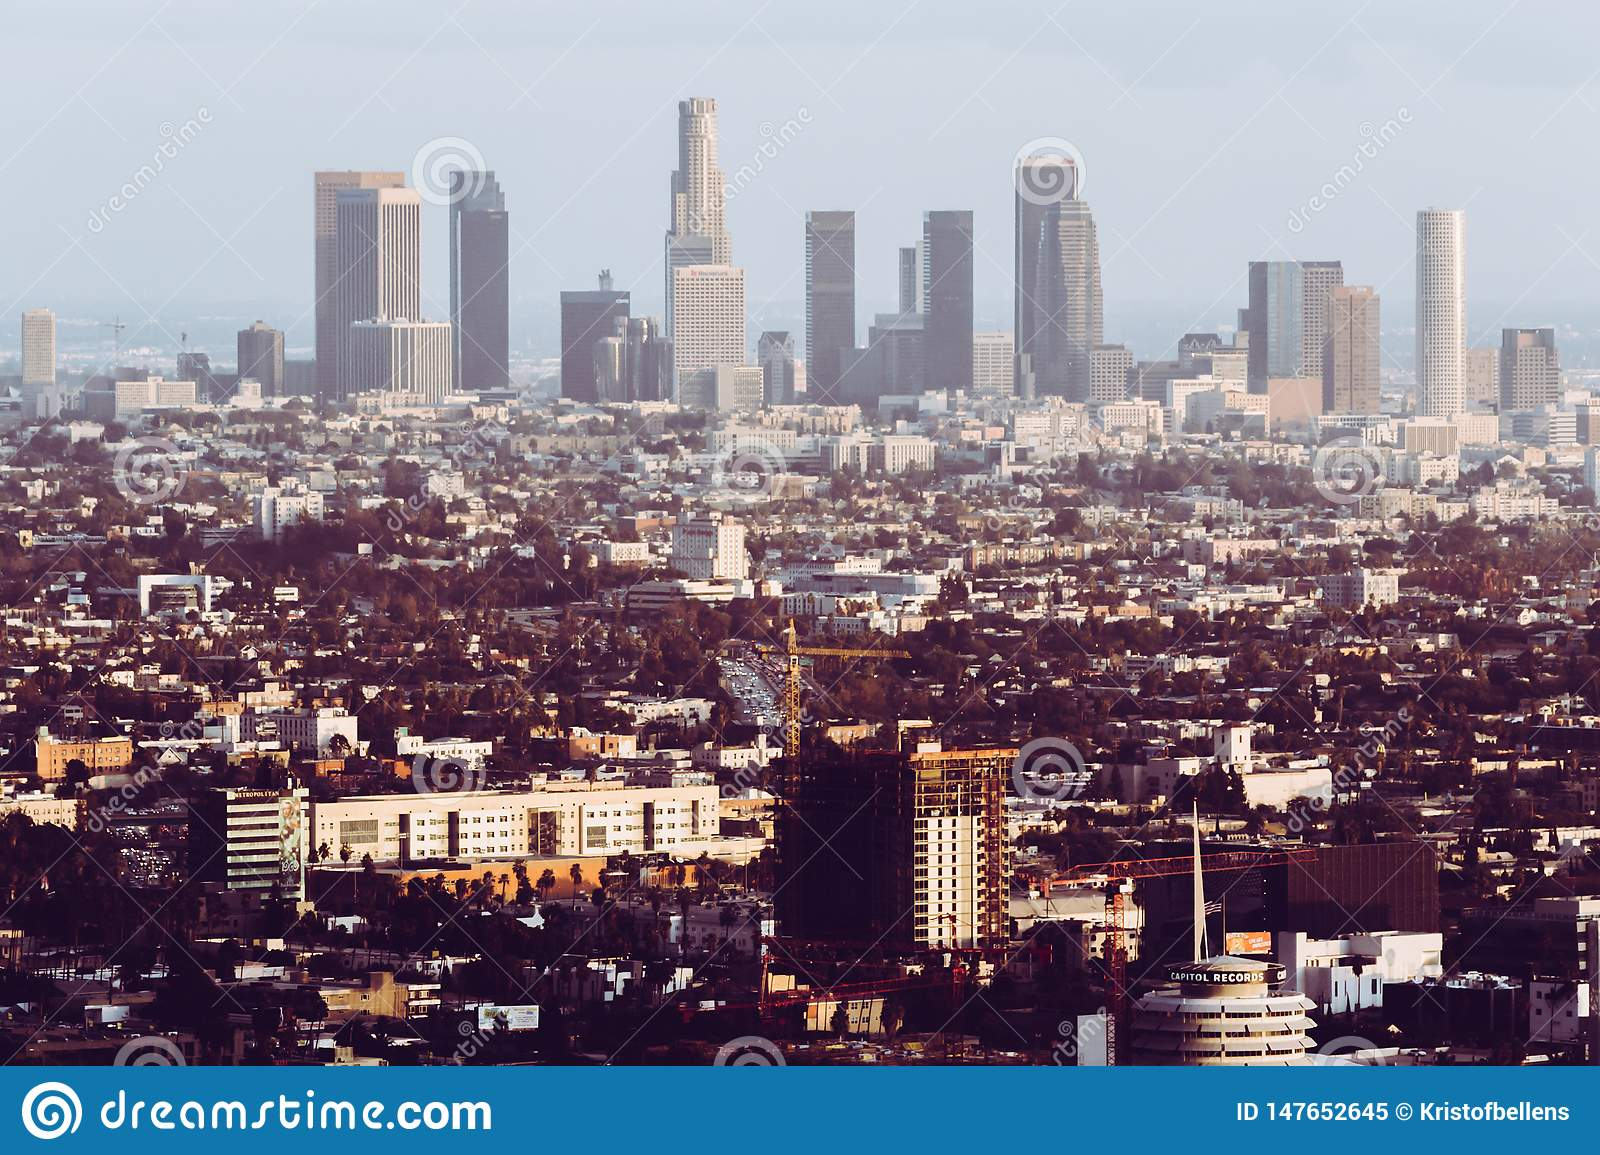 Los Angeles, United States, cityscape - skyline with retro look